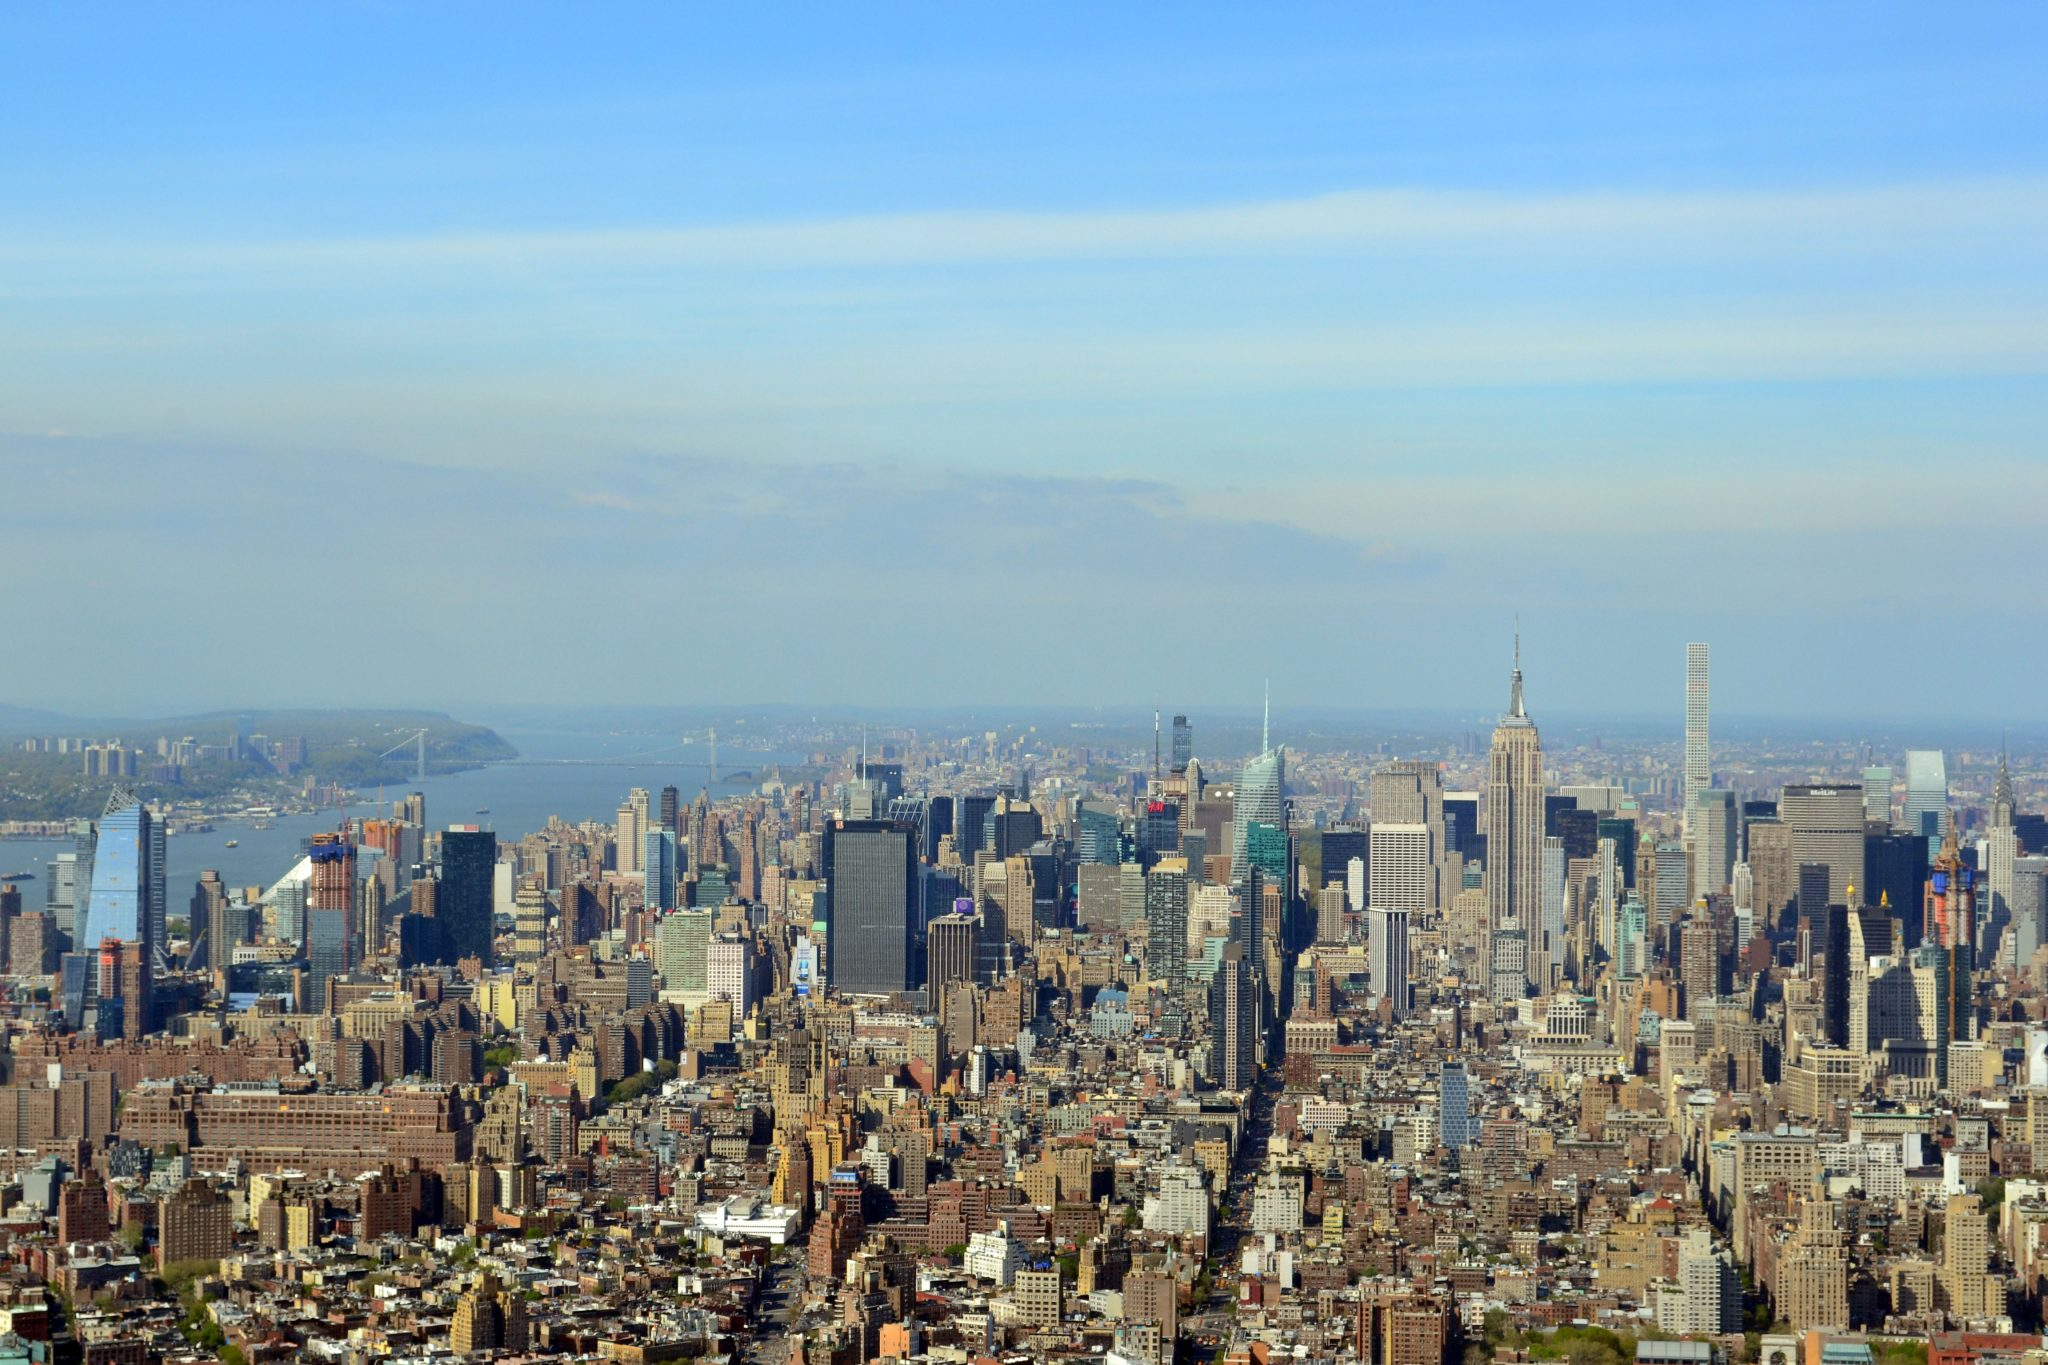 One Year After: New York, I still miss you! - One World Observatory